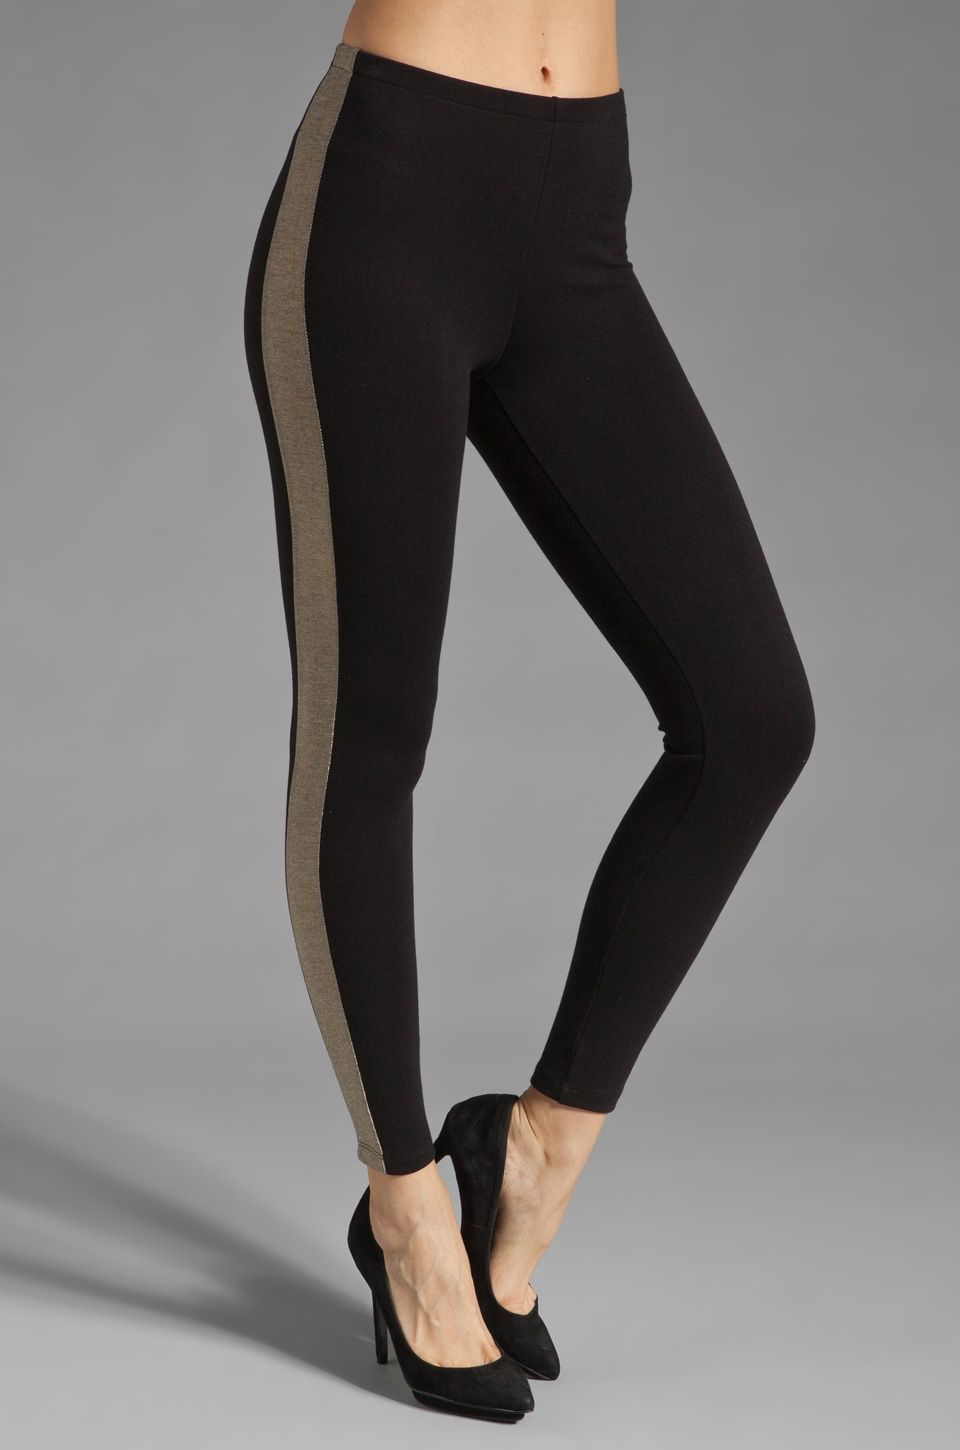 Only Hearts Metallic Tuxedo Legging in Black/Goldstone